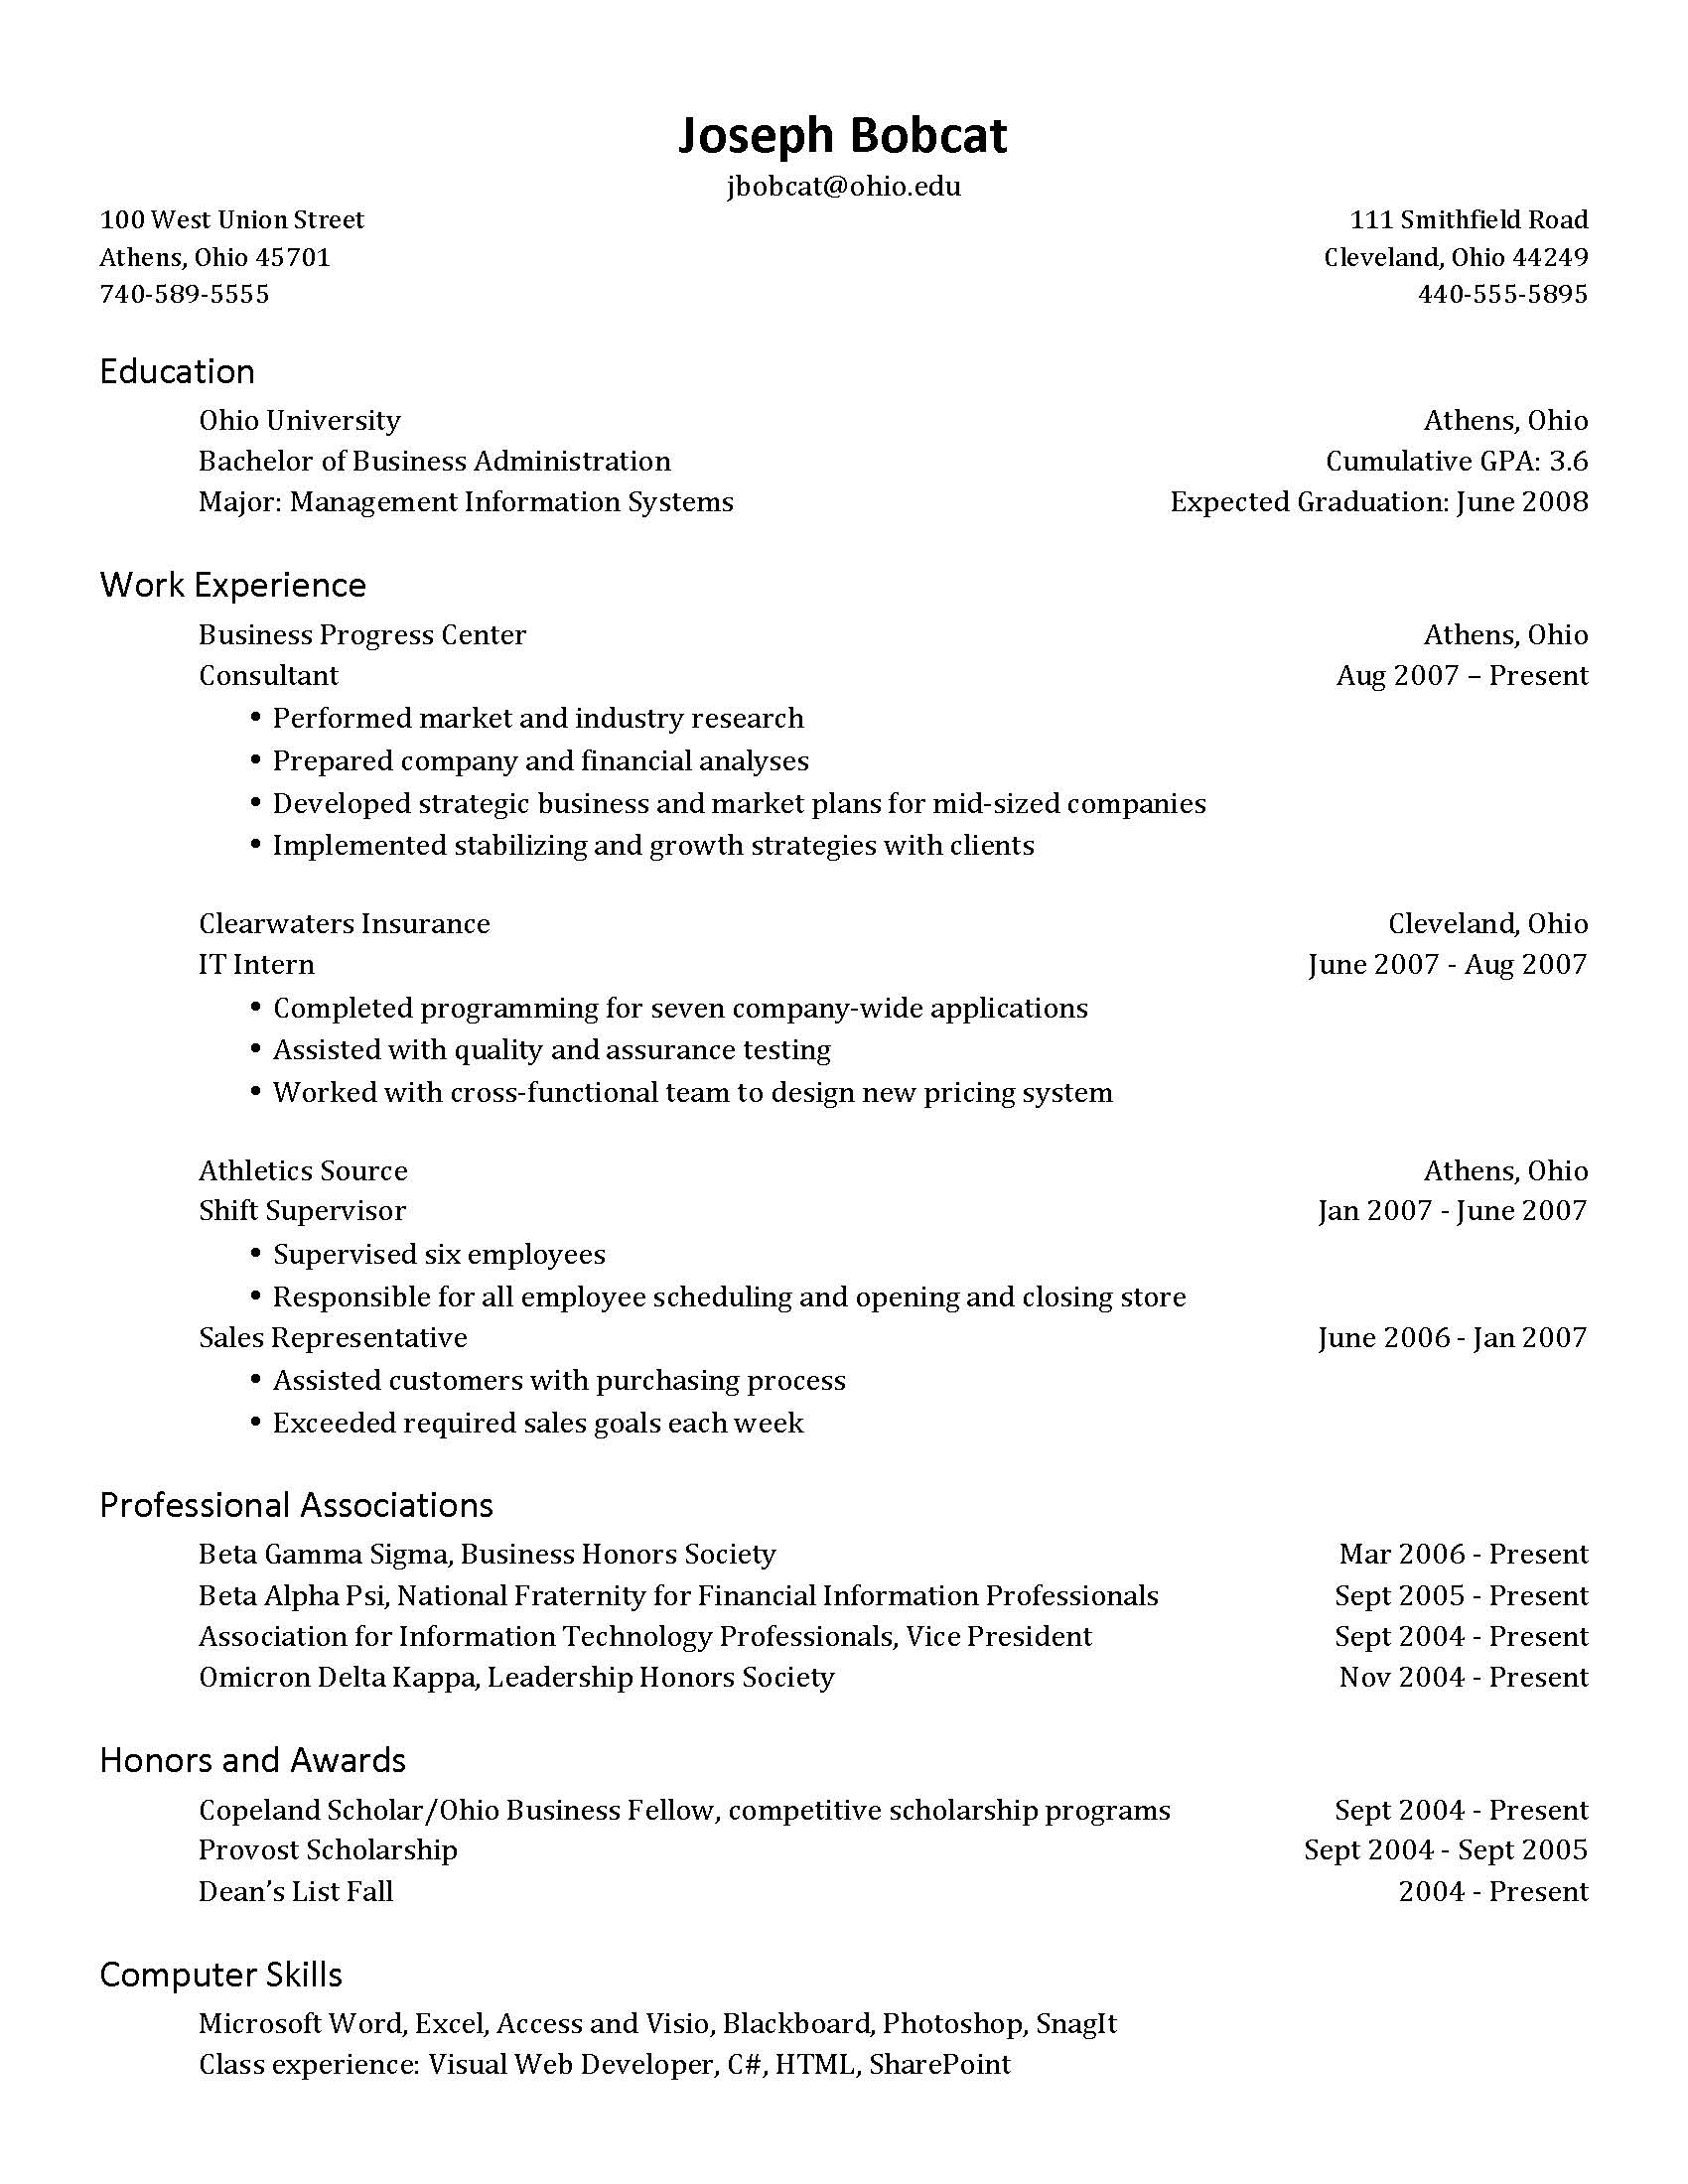 What should a resume contain?